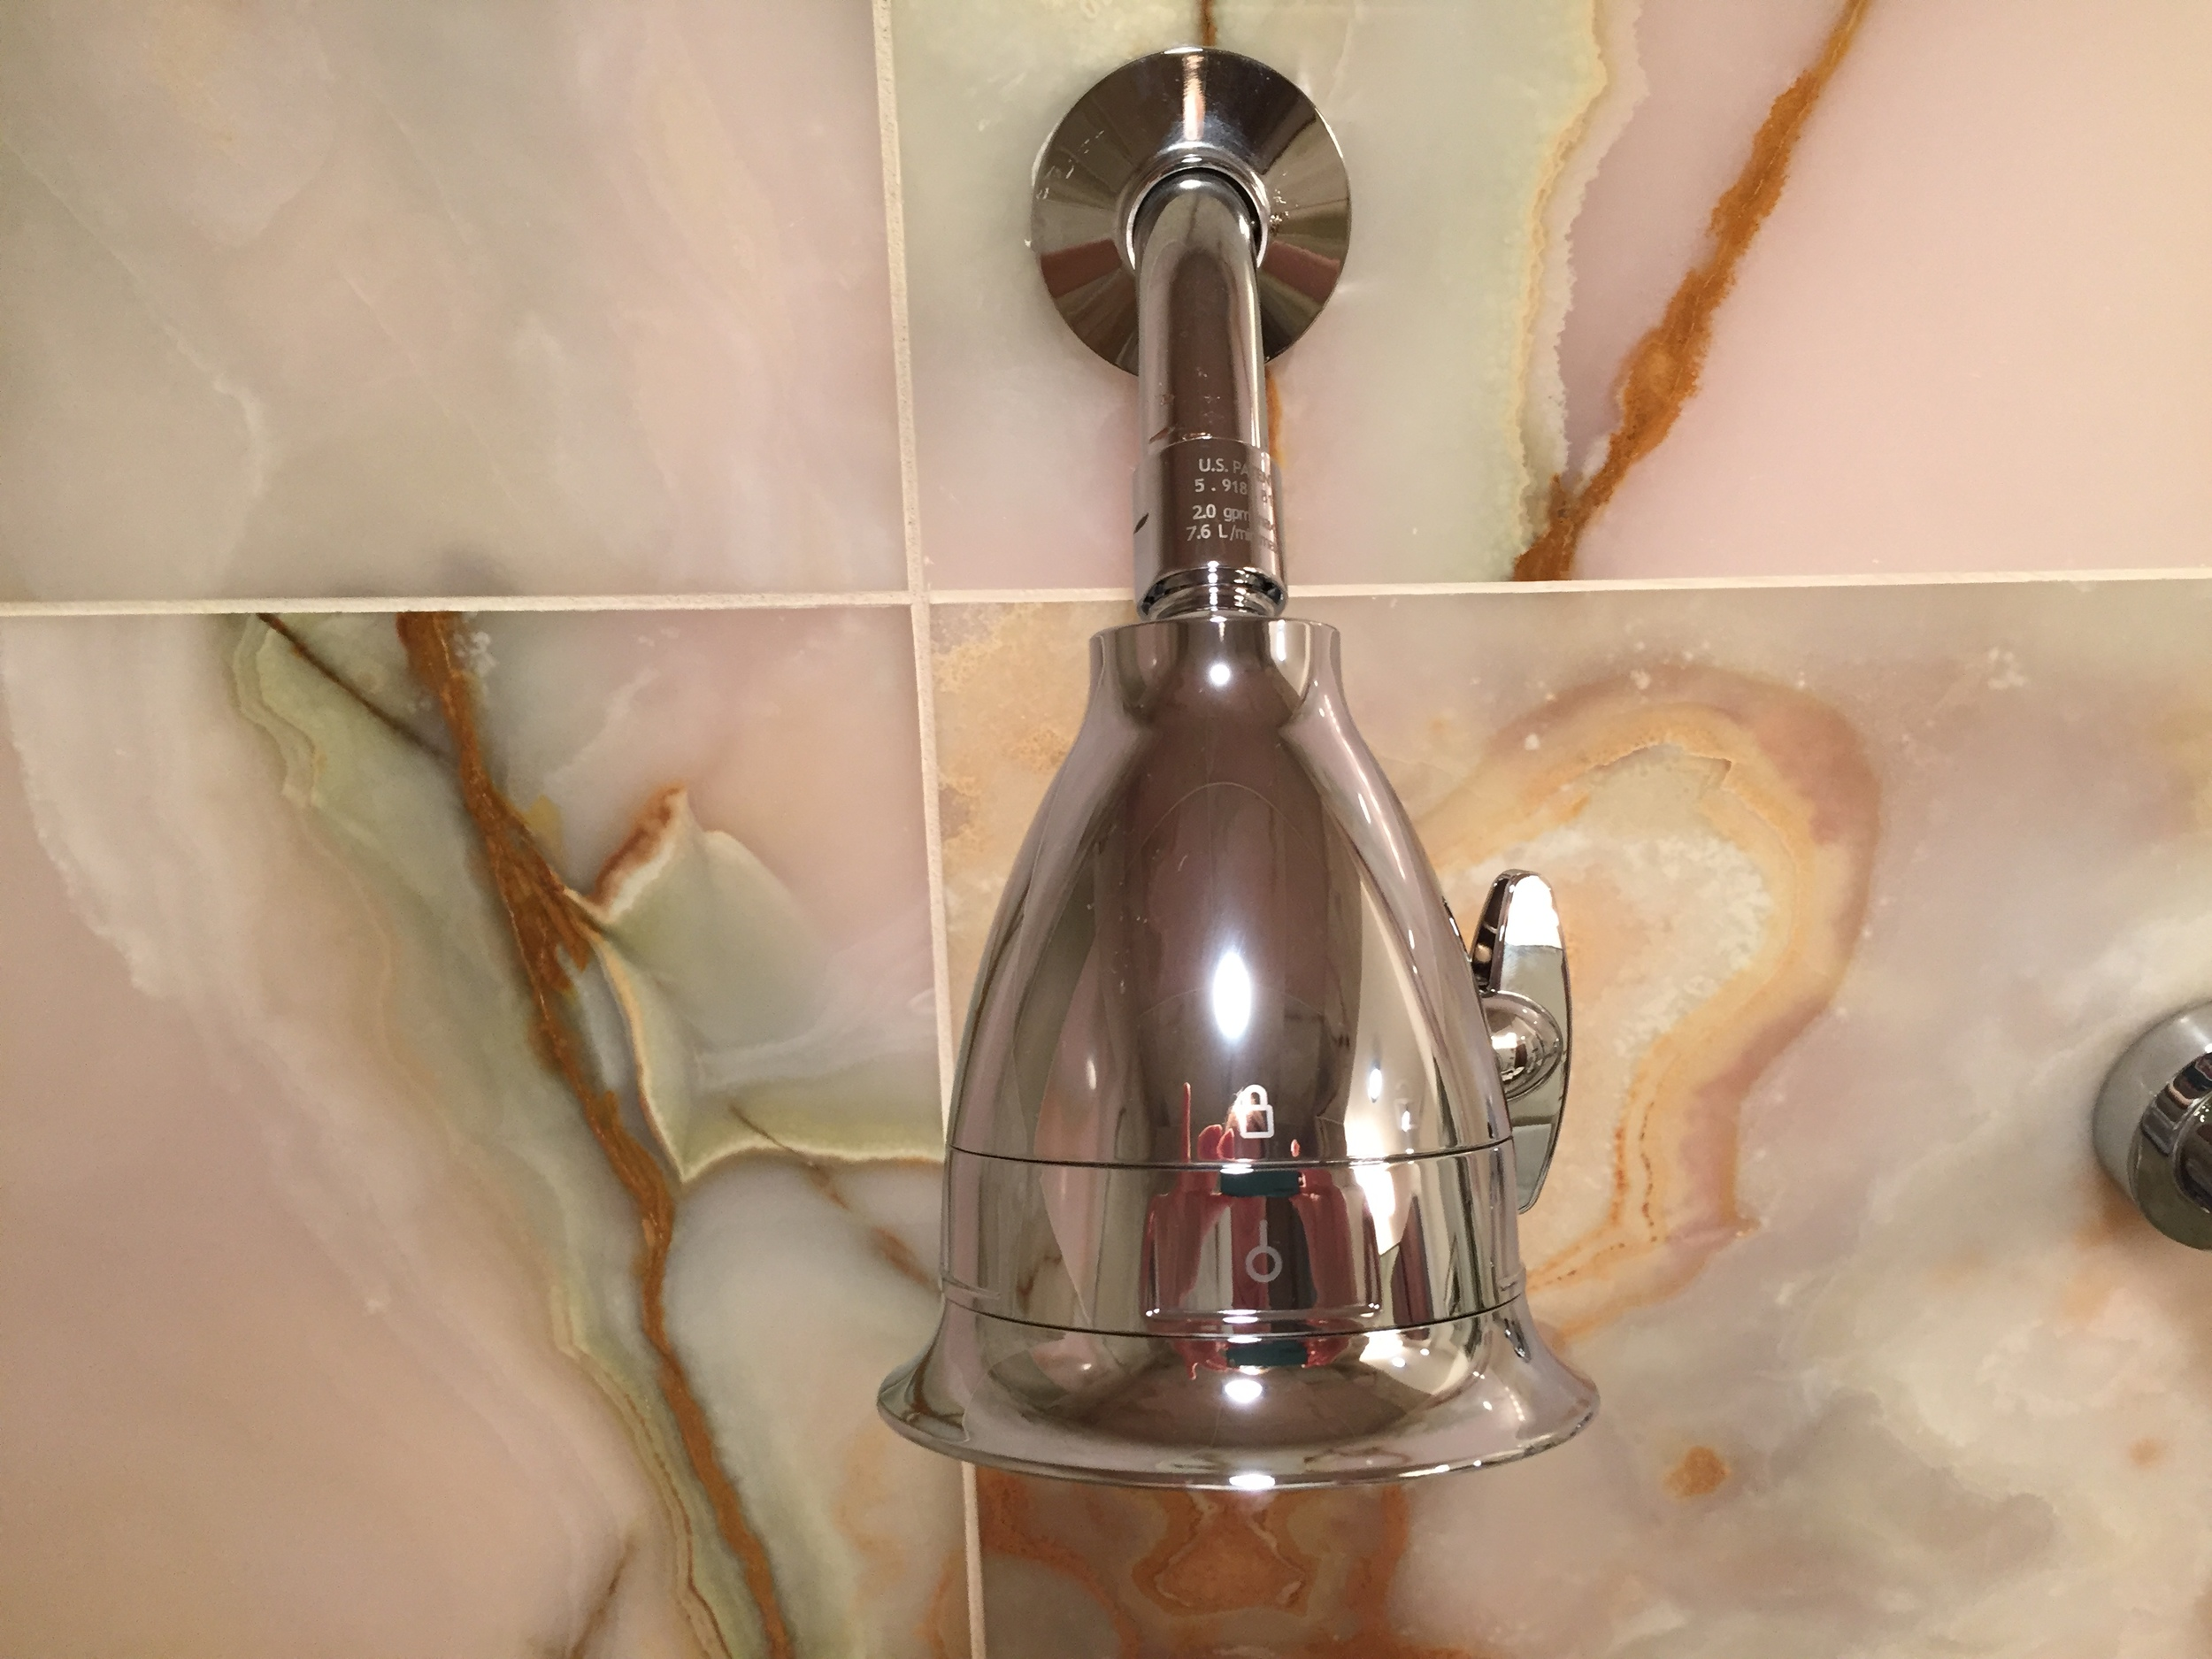 Install the new shower head by twisting clockwise